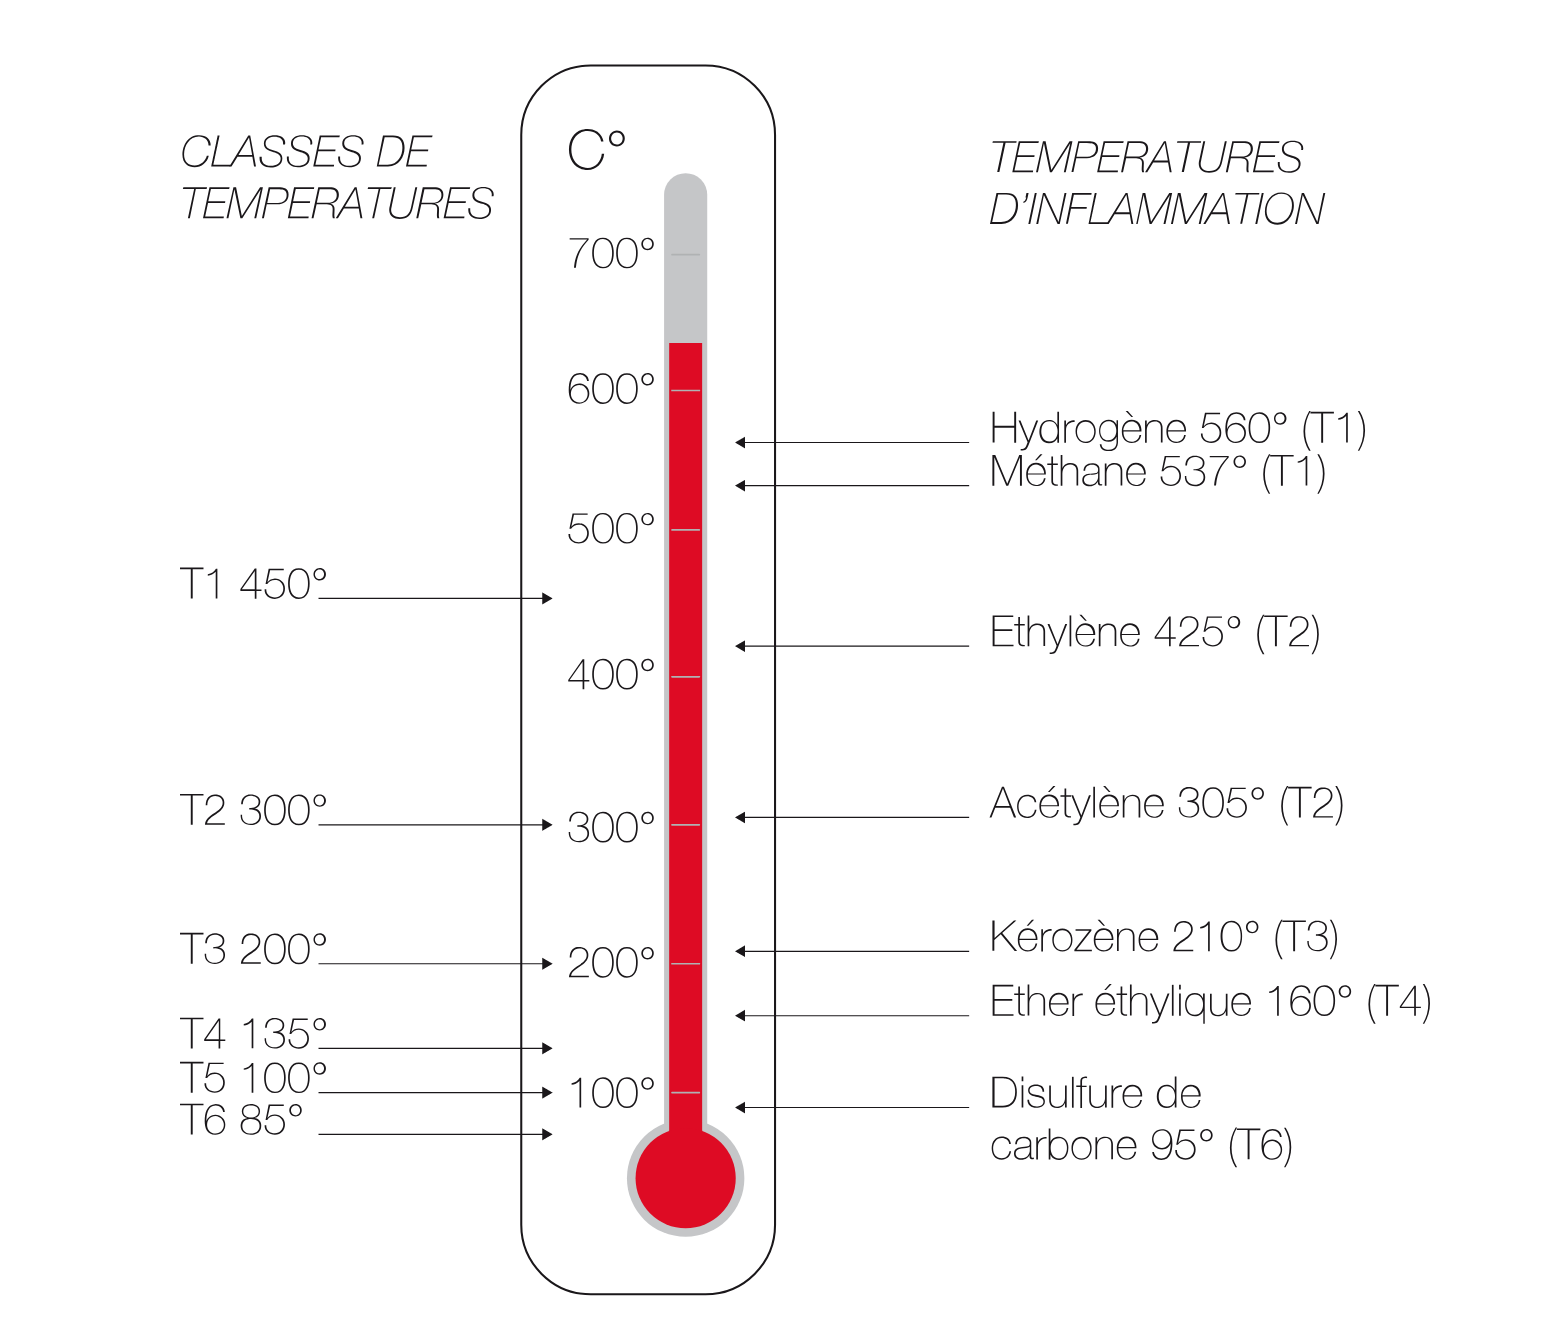 Classes de températures